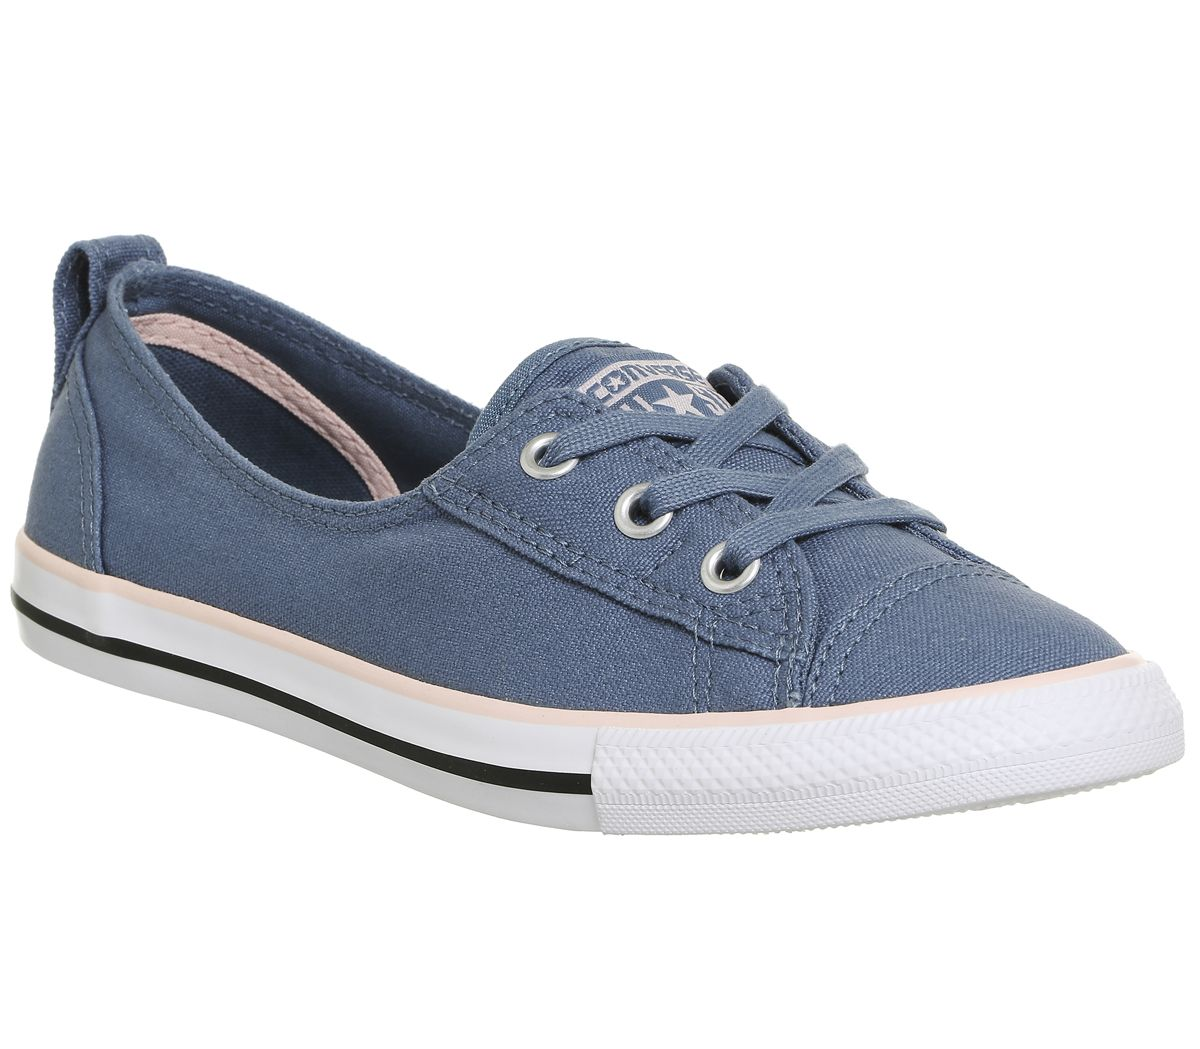 8eba37458294f8 Converse Ctas Ballet Lace Trainers Blue Pink Canvas Exlusive - Hers ...